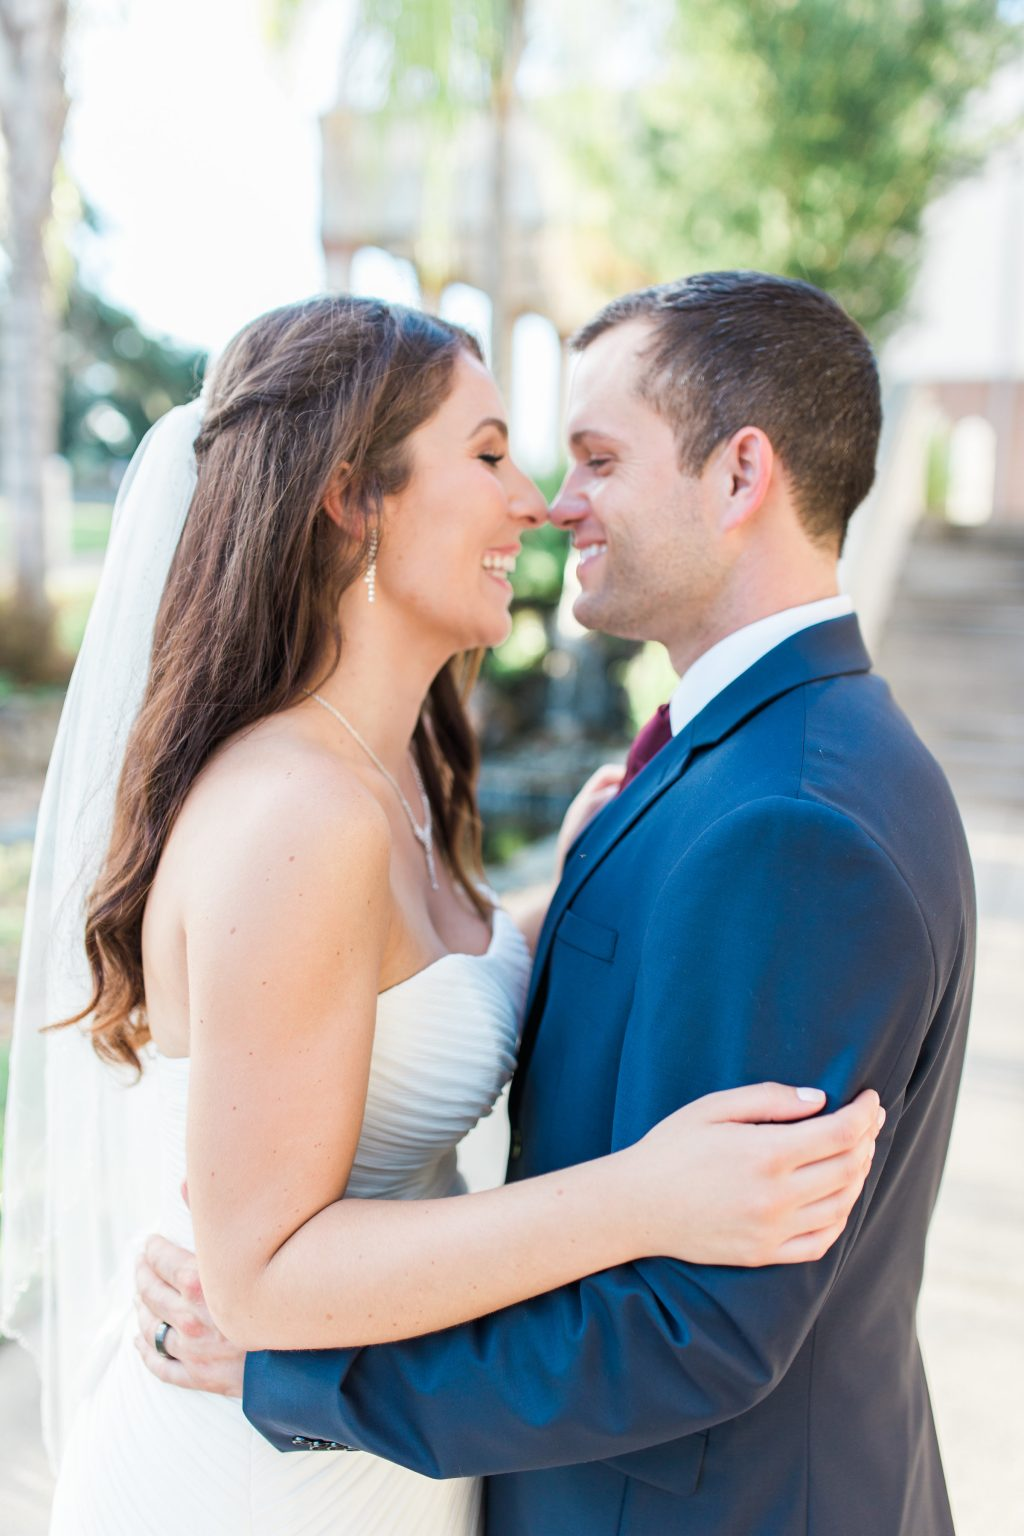 The Copper Lens Photography - What is Normal in Marriage